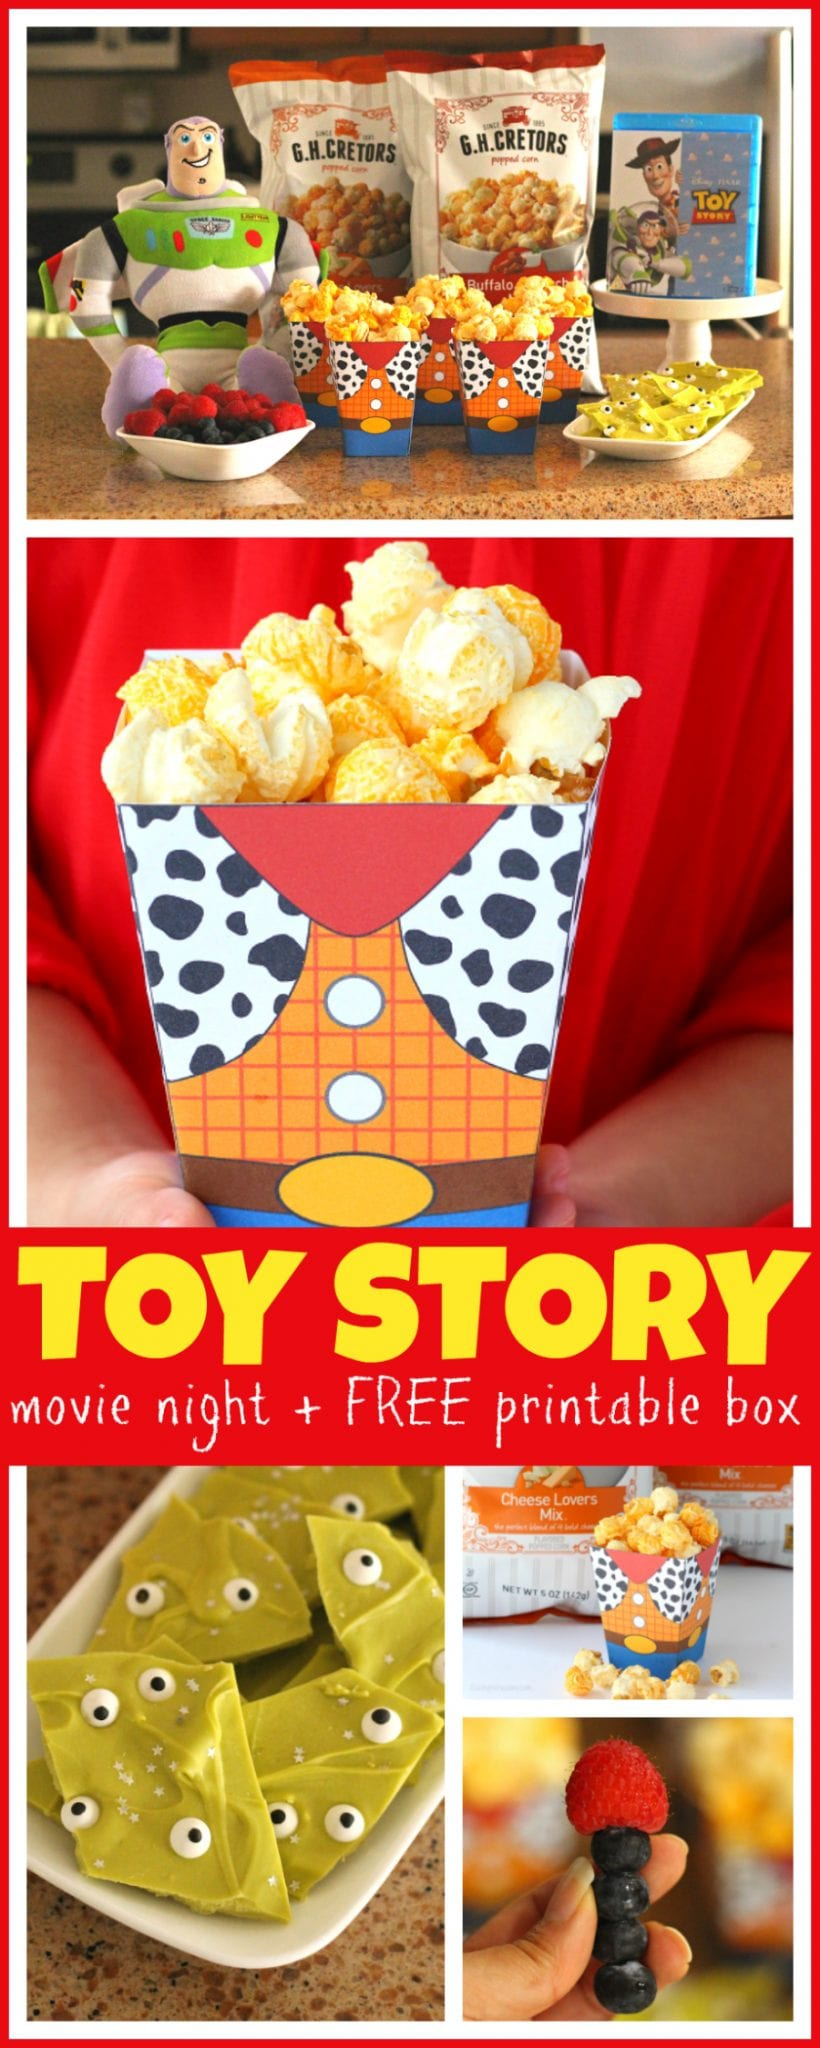 Grab the family for these Easy Toy Story Movie Night Ideas! Your Disney bunch will love these simple Toy Story themed food ideas + FREE Printable Woody Popcorn Box! - #ToyStory #MovieNight #PartyPlanning